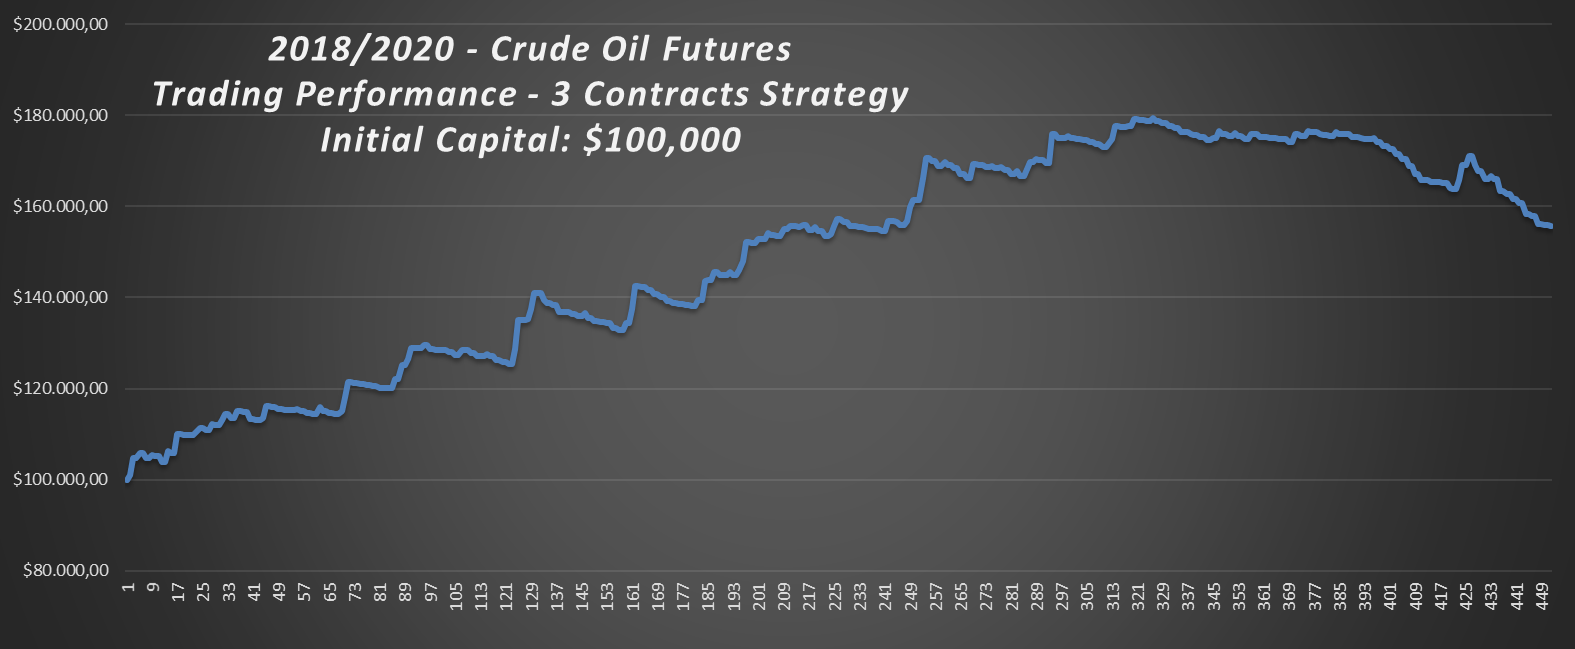 2018-2020-Crude-Oil-Trading-Strategy-Performance